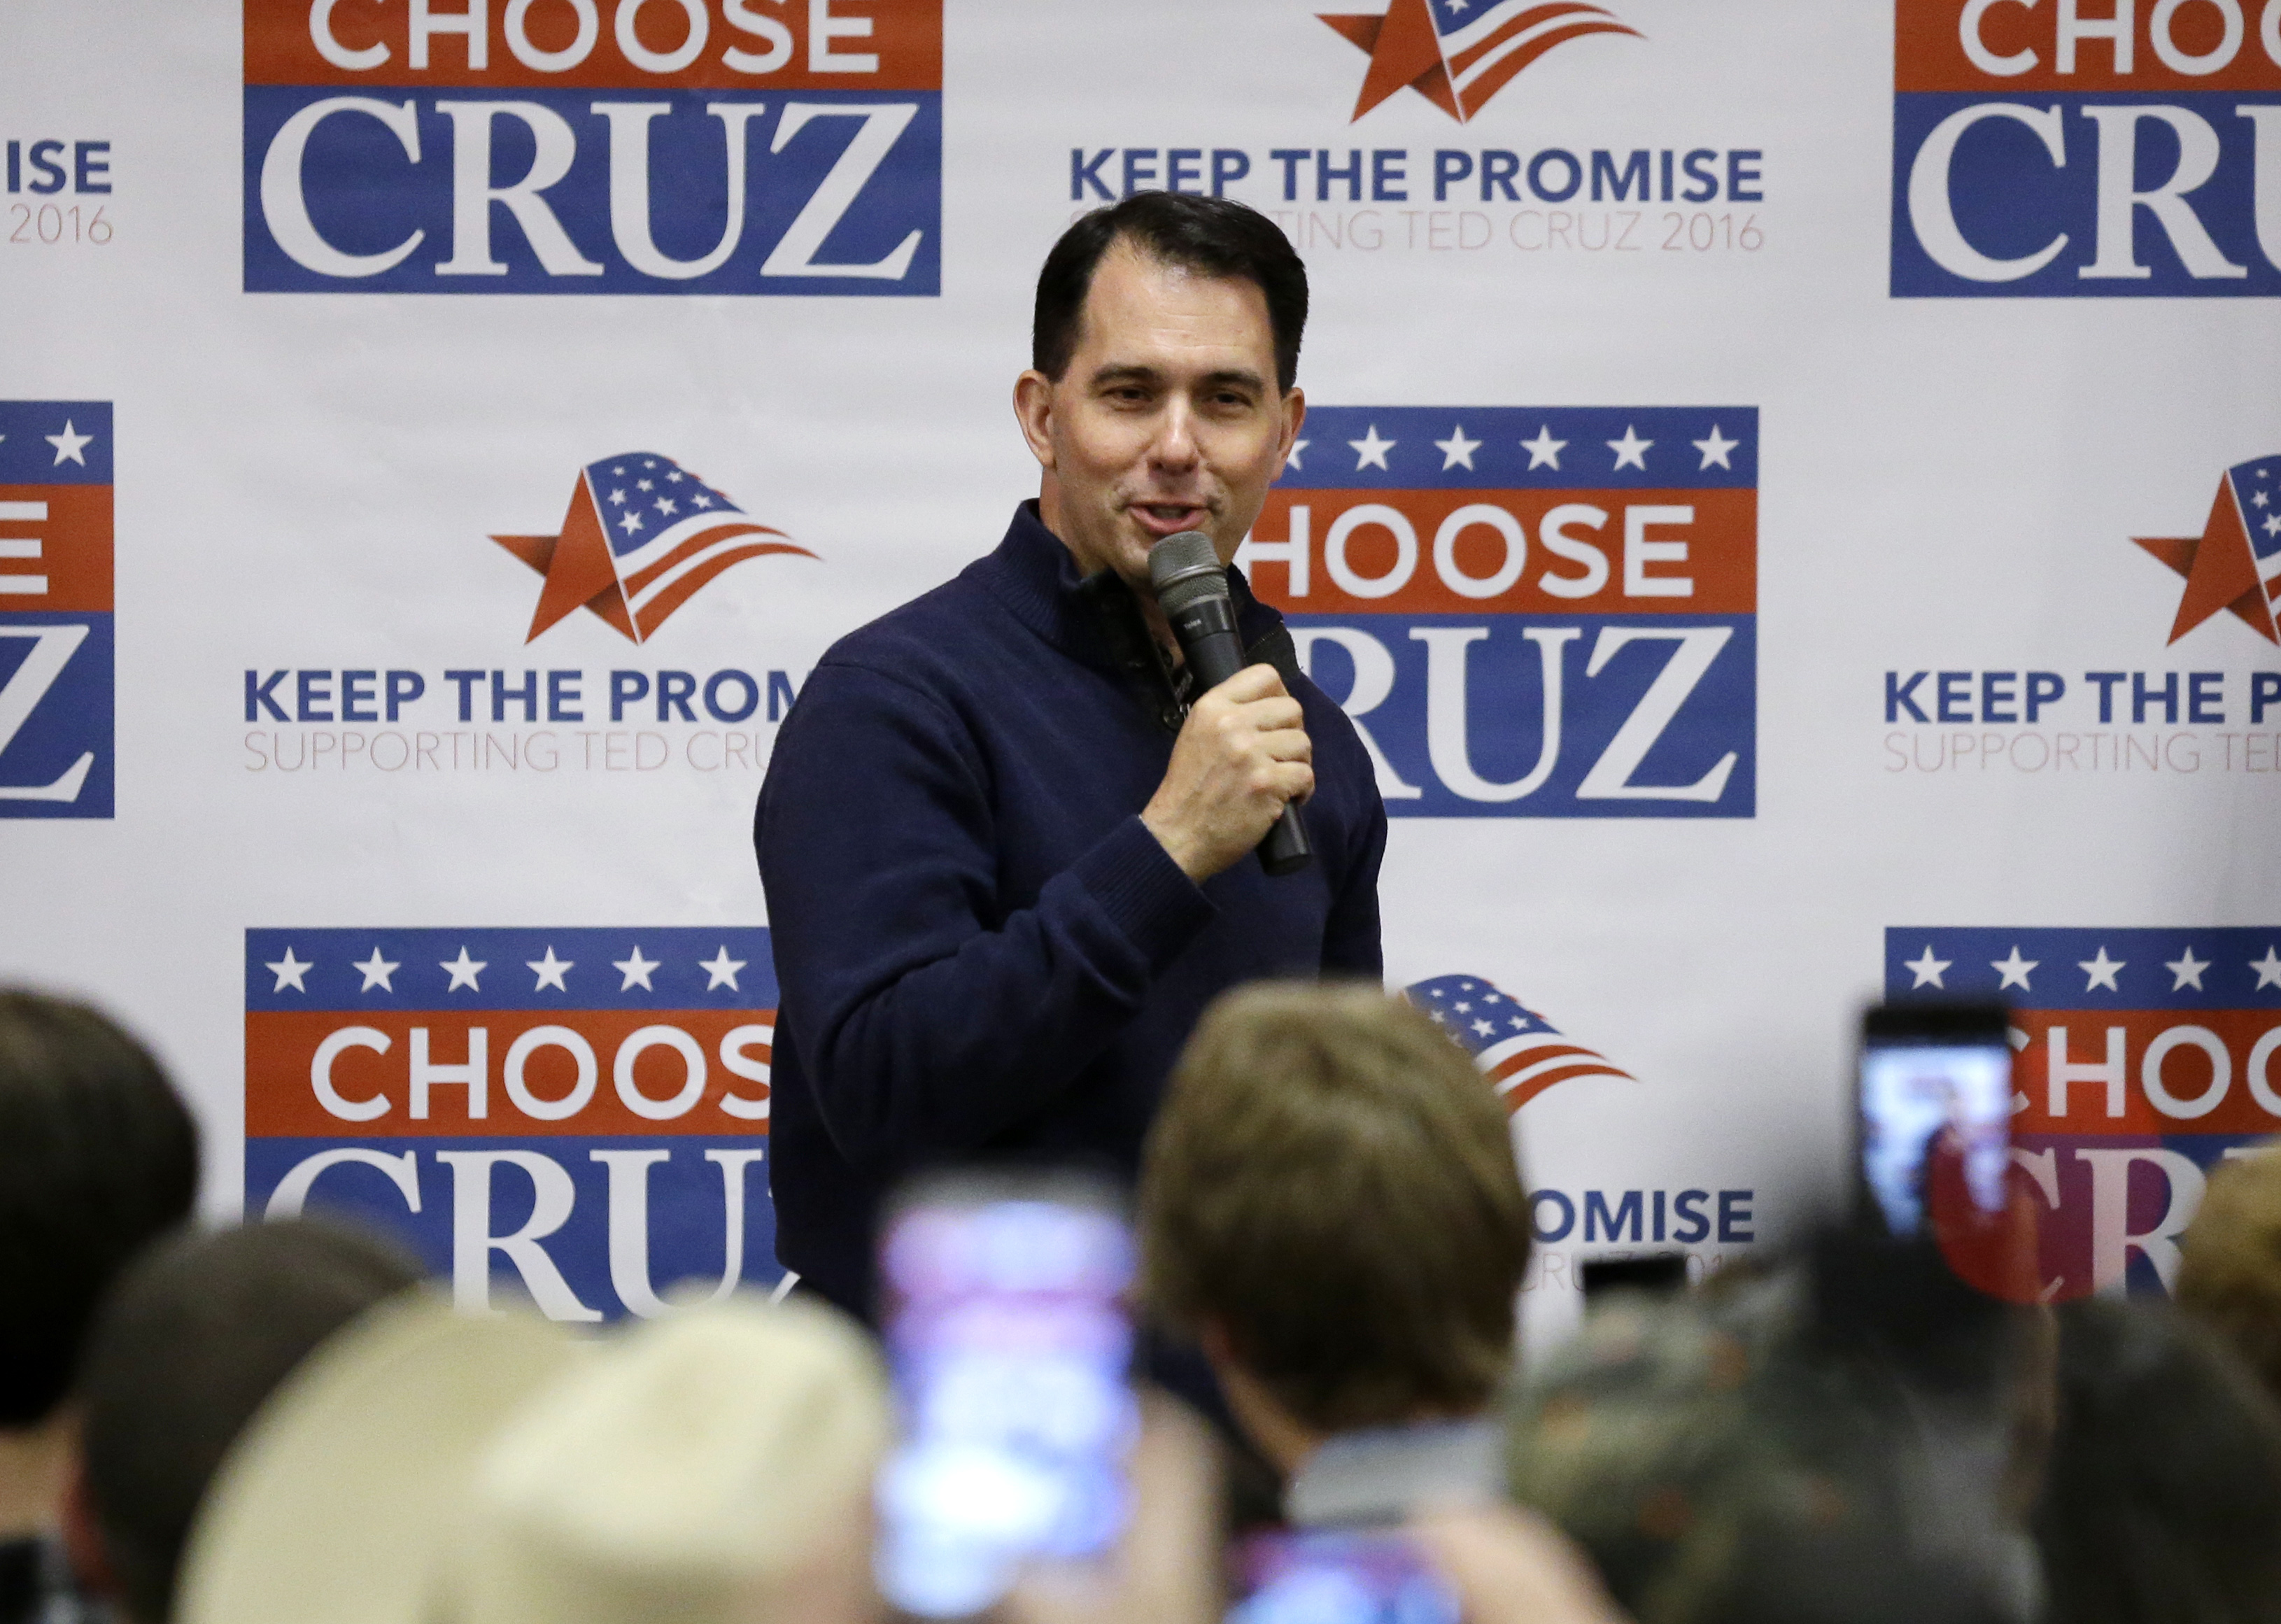 Gov. Scott Walker introduces Republican presidential candidate Sen. Ted Cruz, R-Texas, during a campaign event at the Florian Gardens, Sunday, April 3, 2016, in Eau Claire, Wis. (AP Photo/Nam Y. Huh)